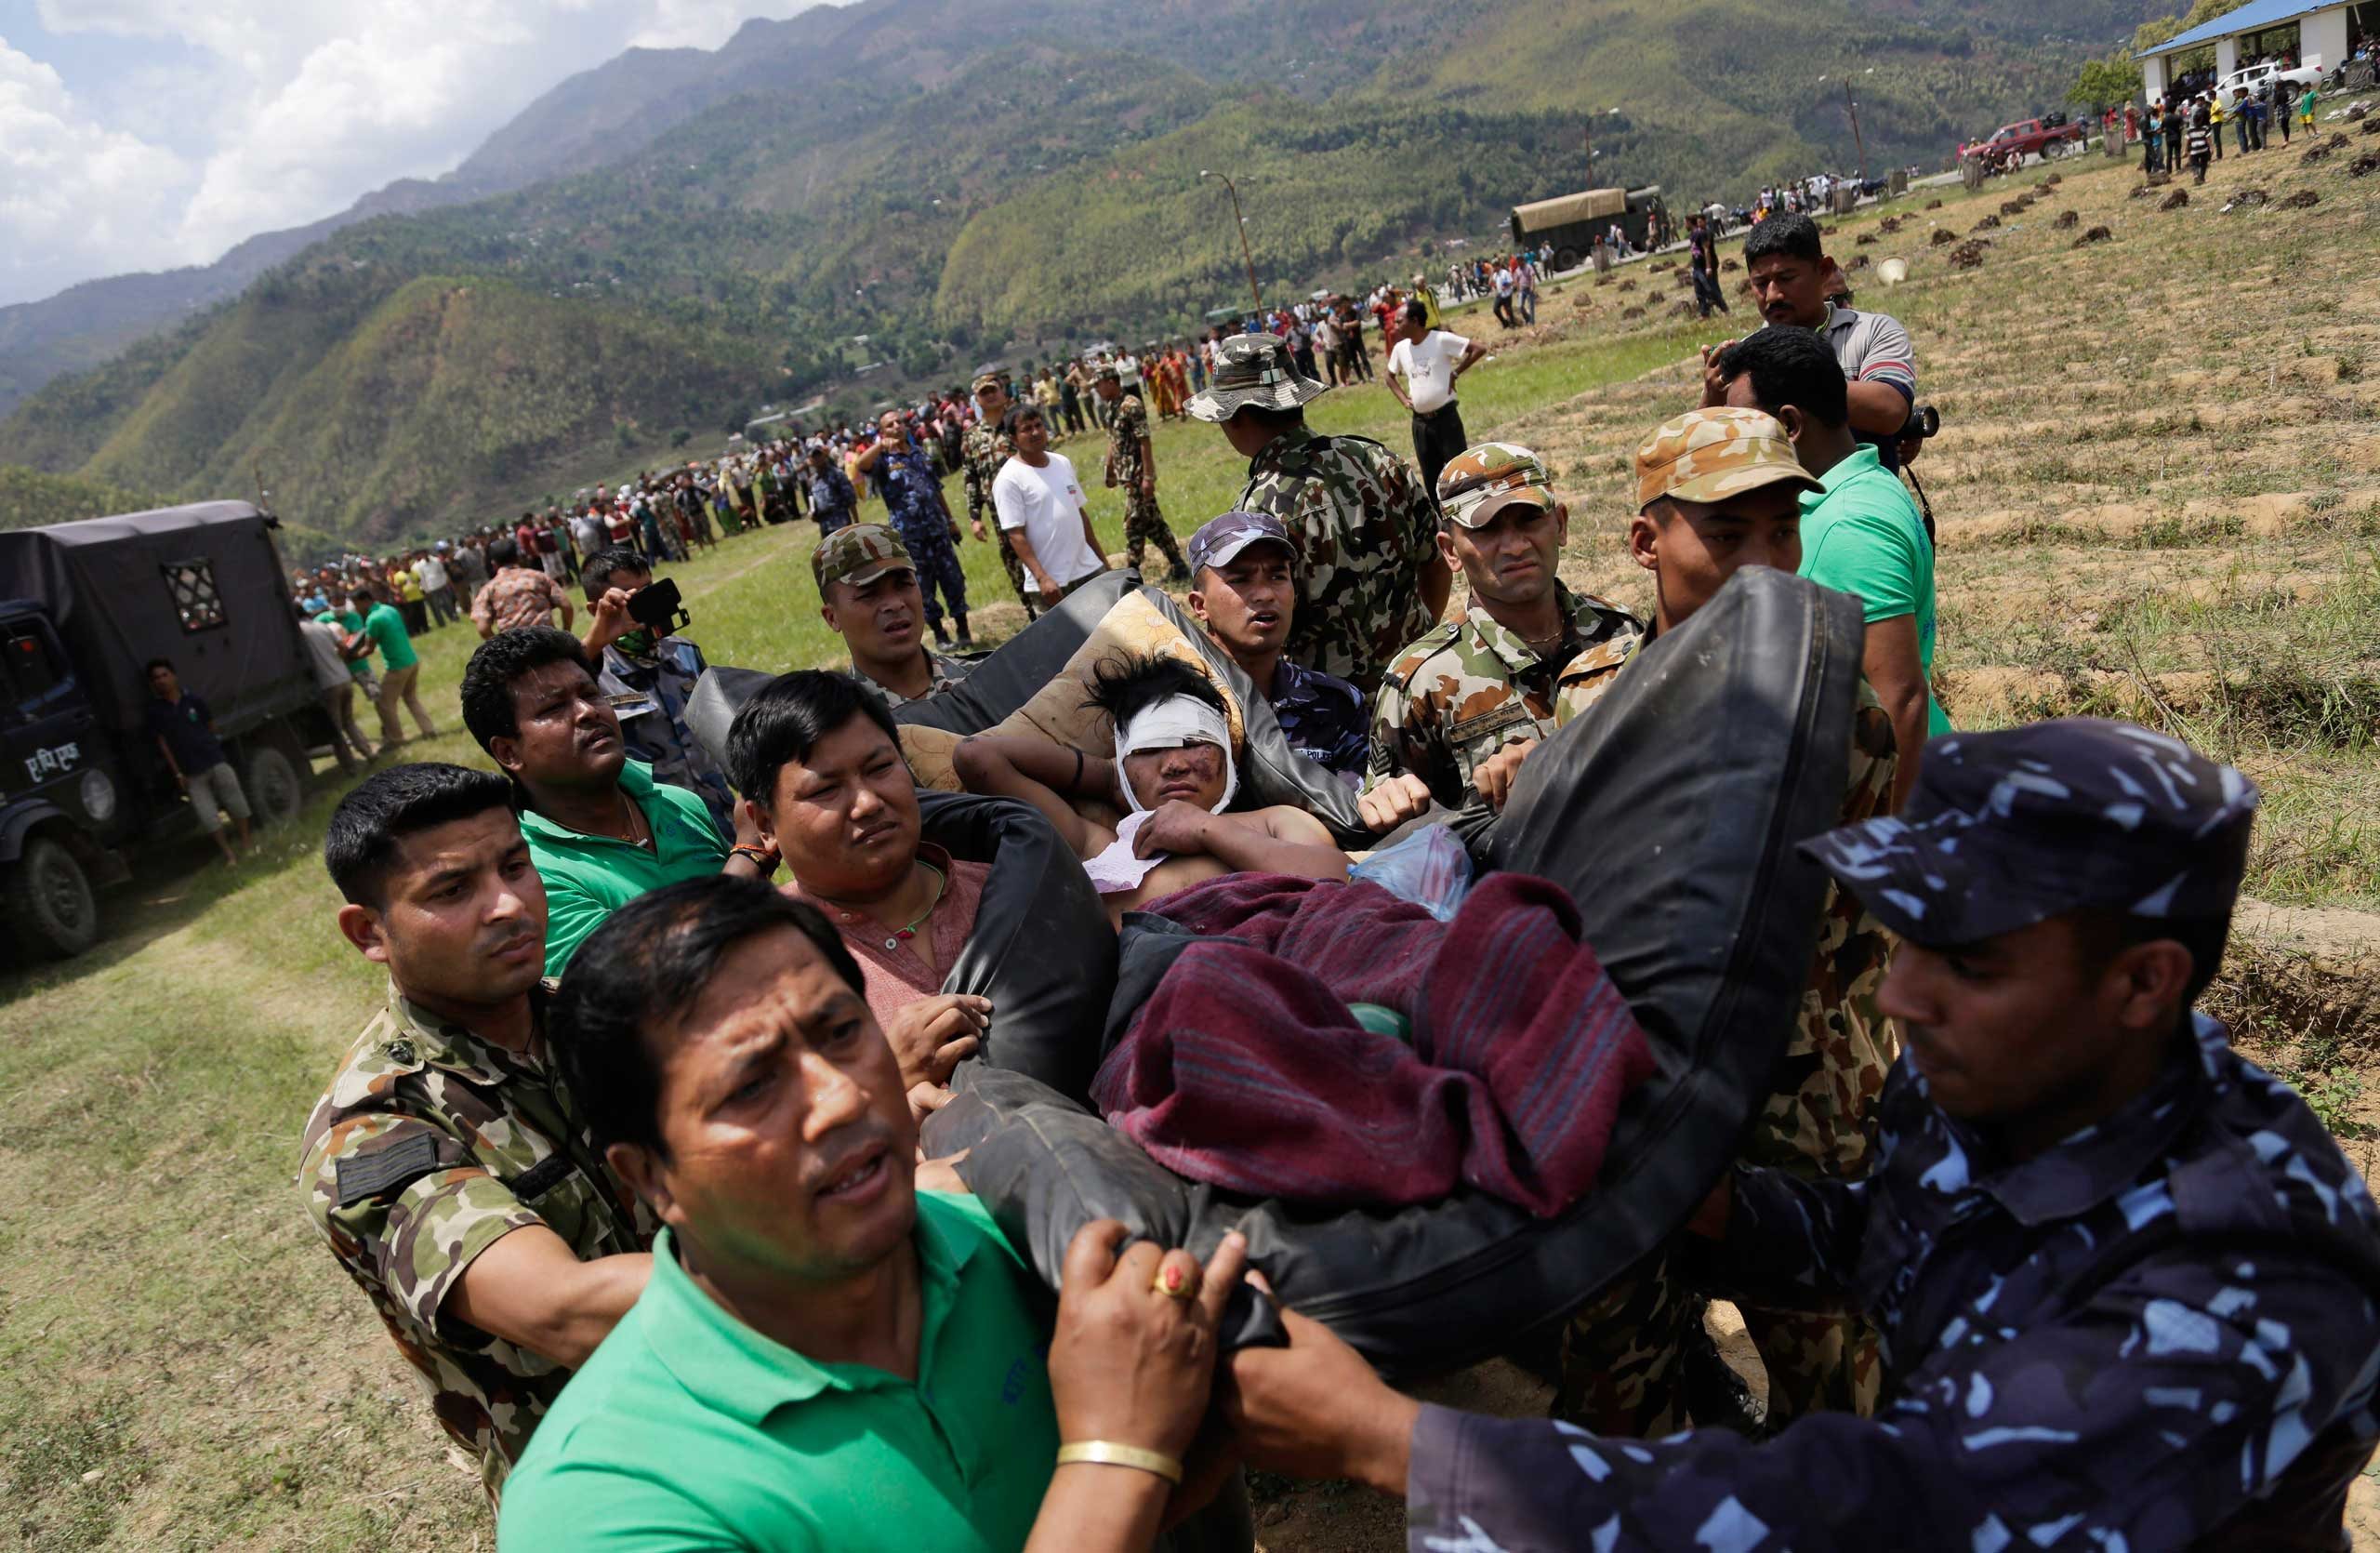 Nepalese soldiers carry a wounded man on a makeshift stretcher to an Indian Air Force helicopter as they evacuate victims of Saturday's earthquake from Trishuli Bazar to Kathmandu airport in Nepal on April 27, 2015.